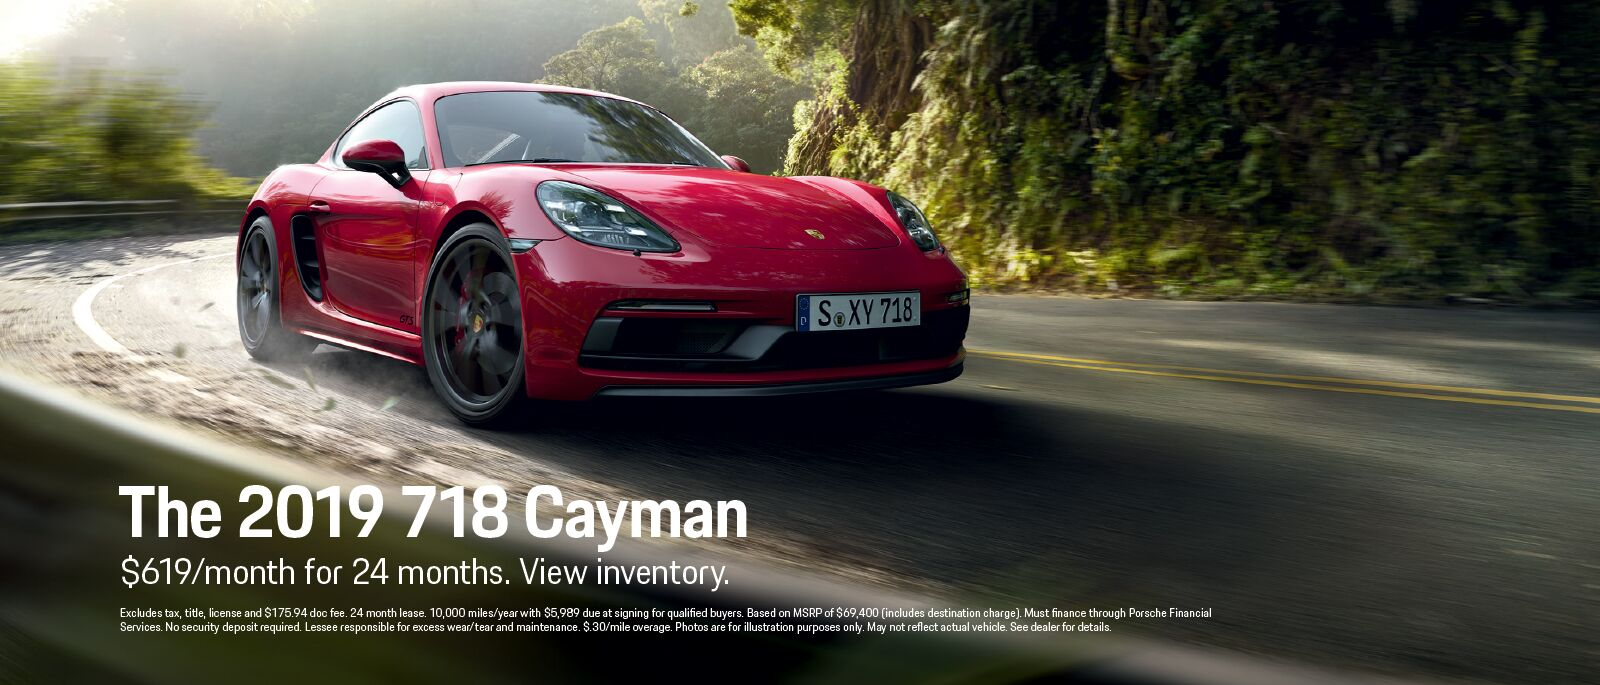 The 2019 718 Cayman